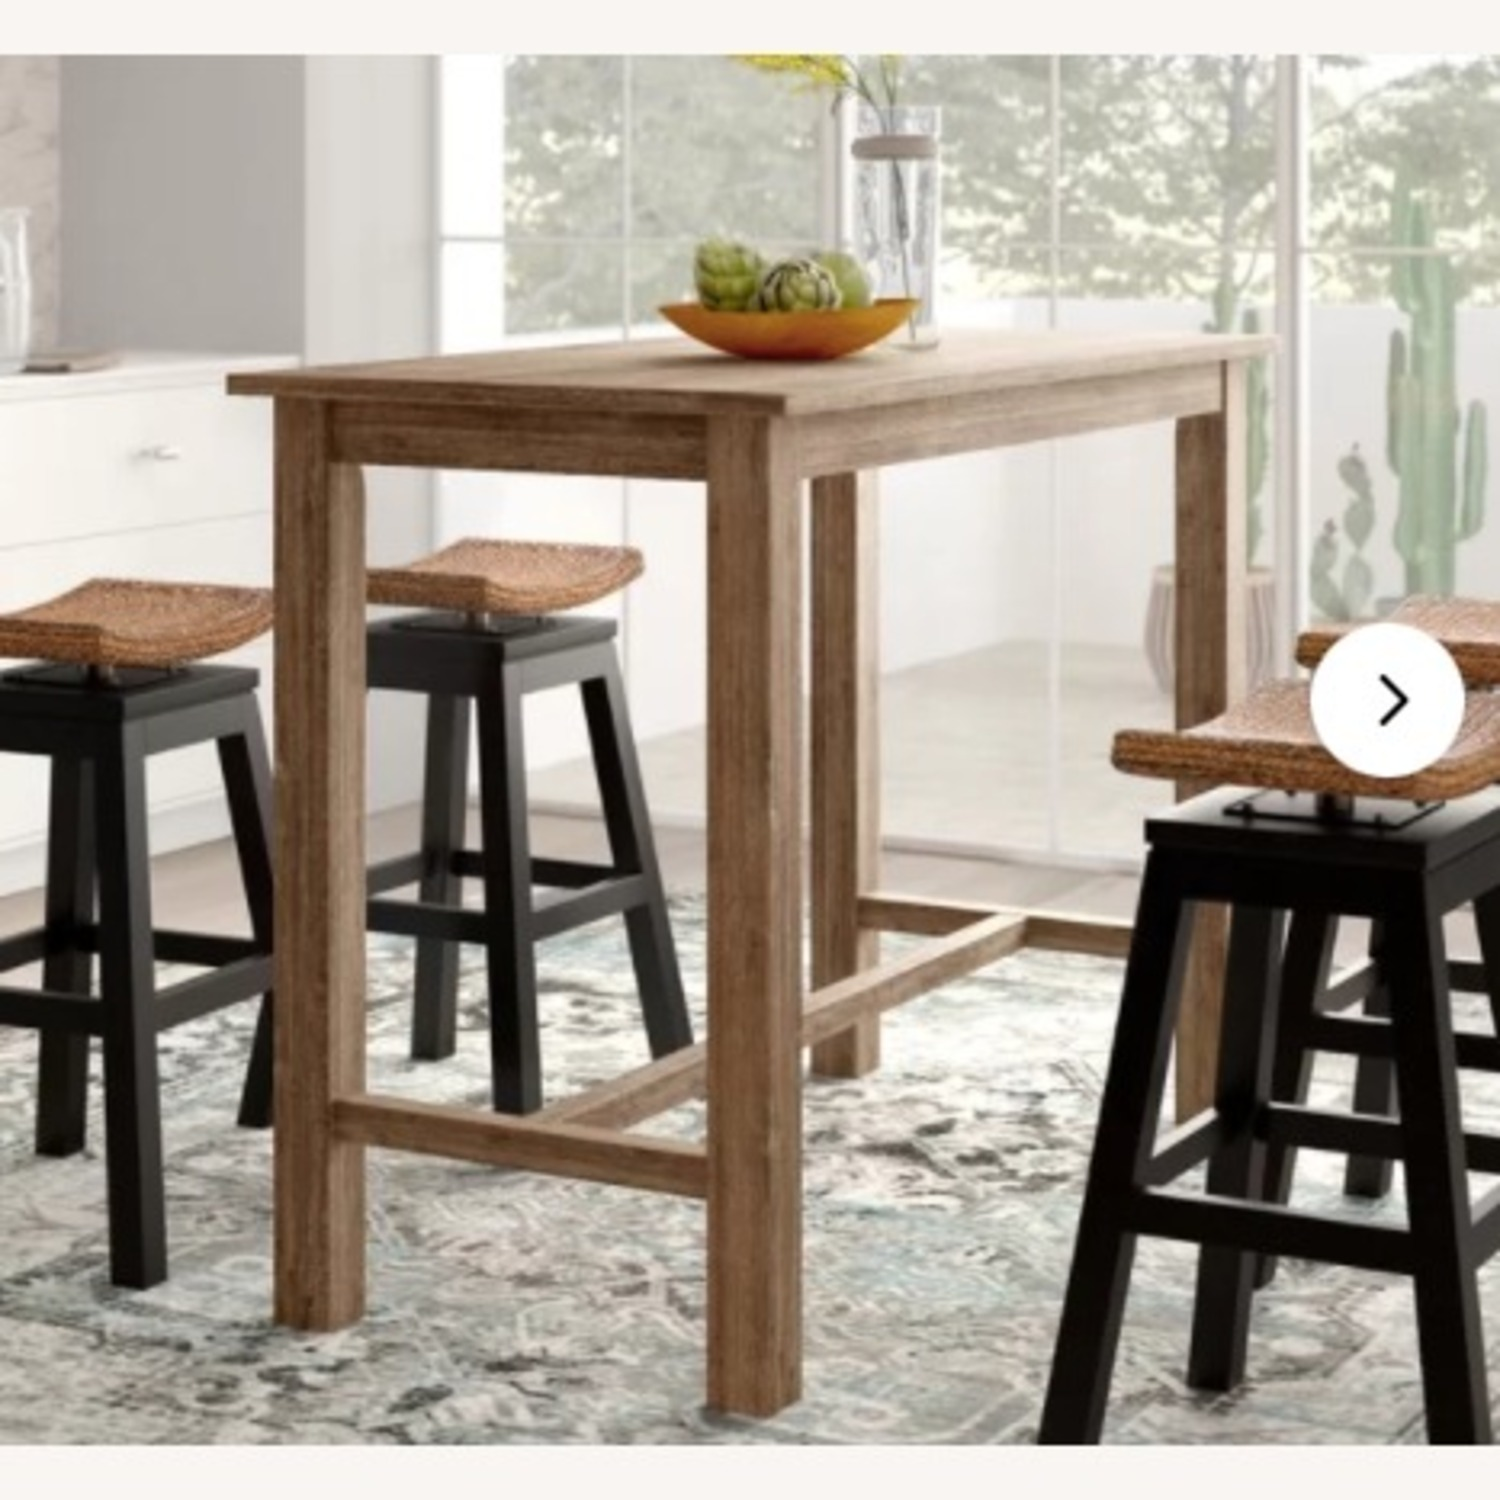 Wayfair Counter Height Rubberwood Solid Wood Dining Table - image-5